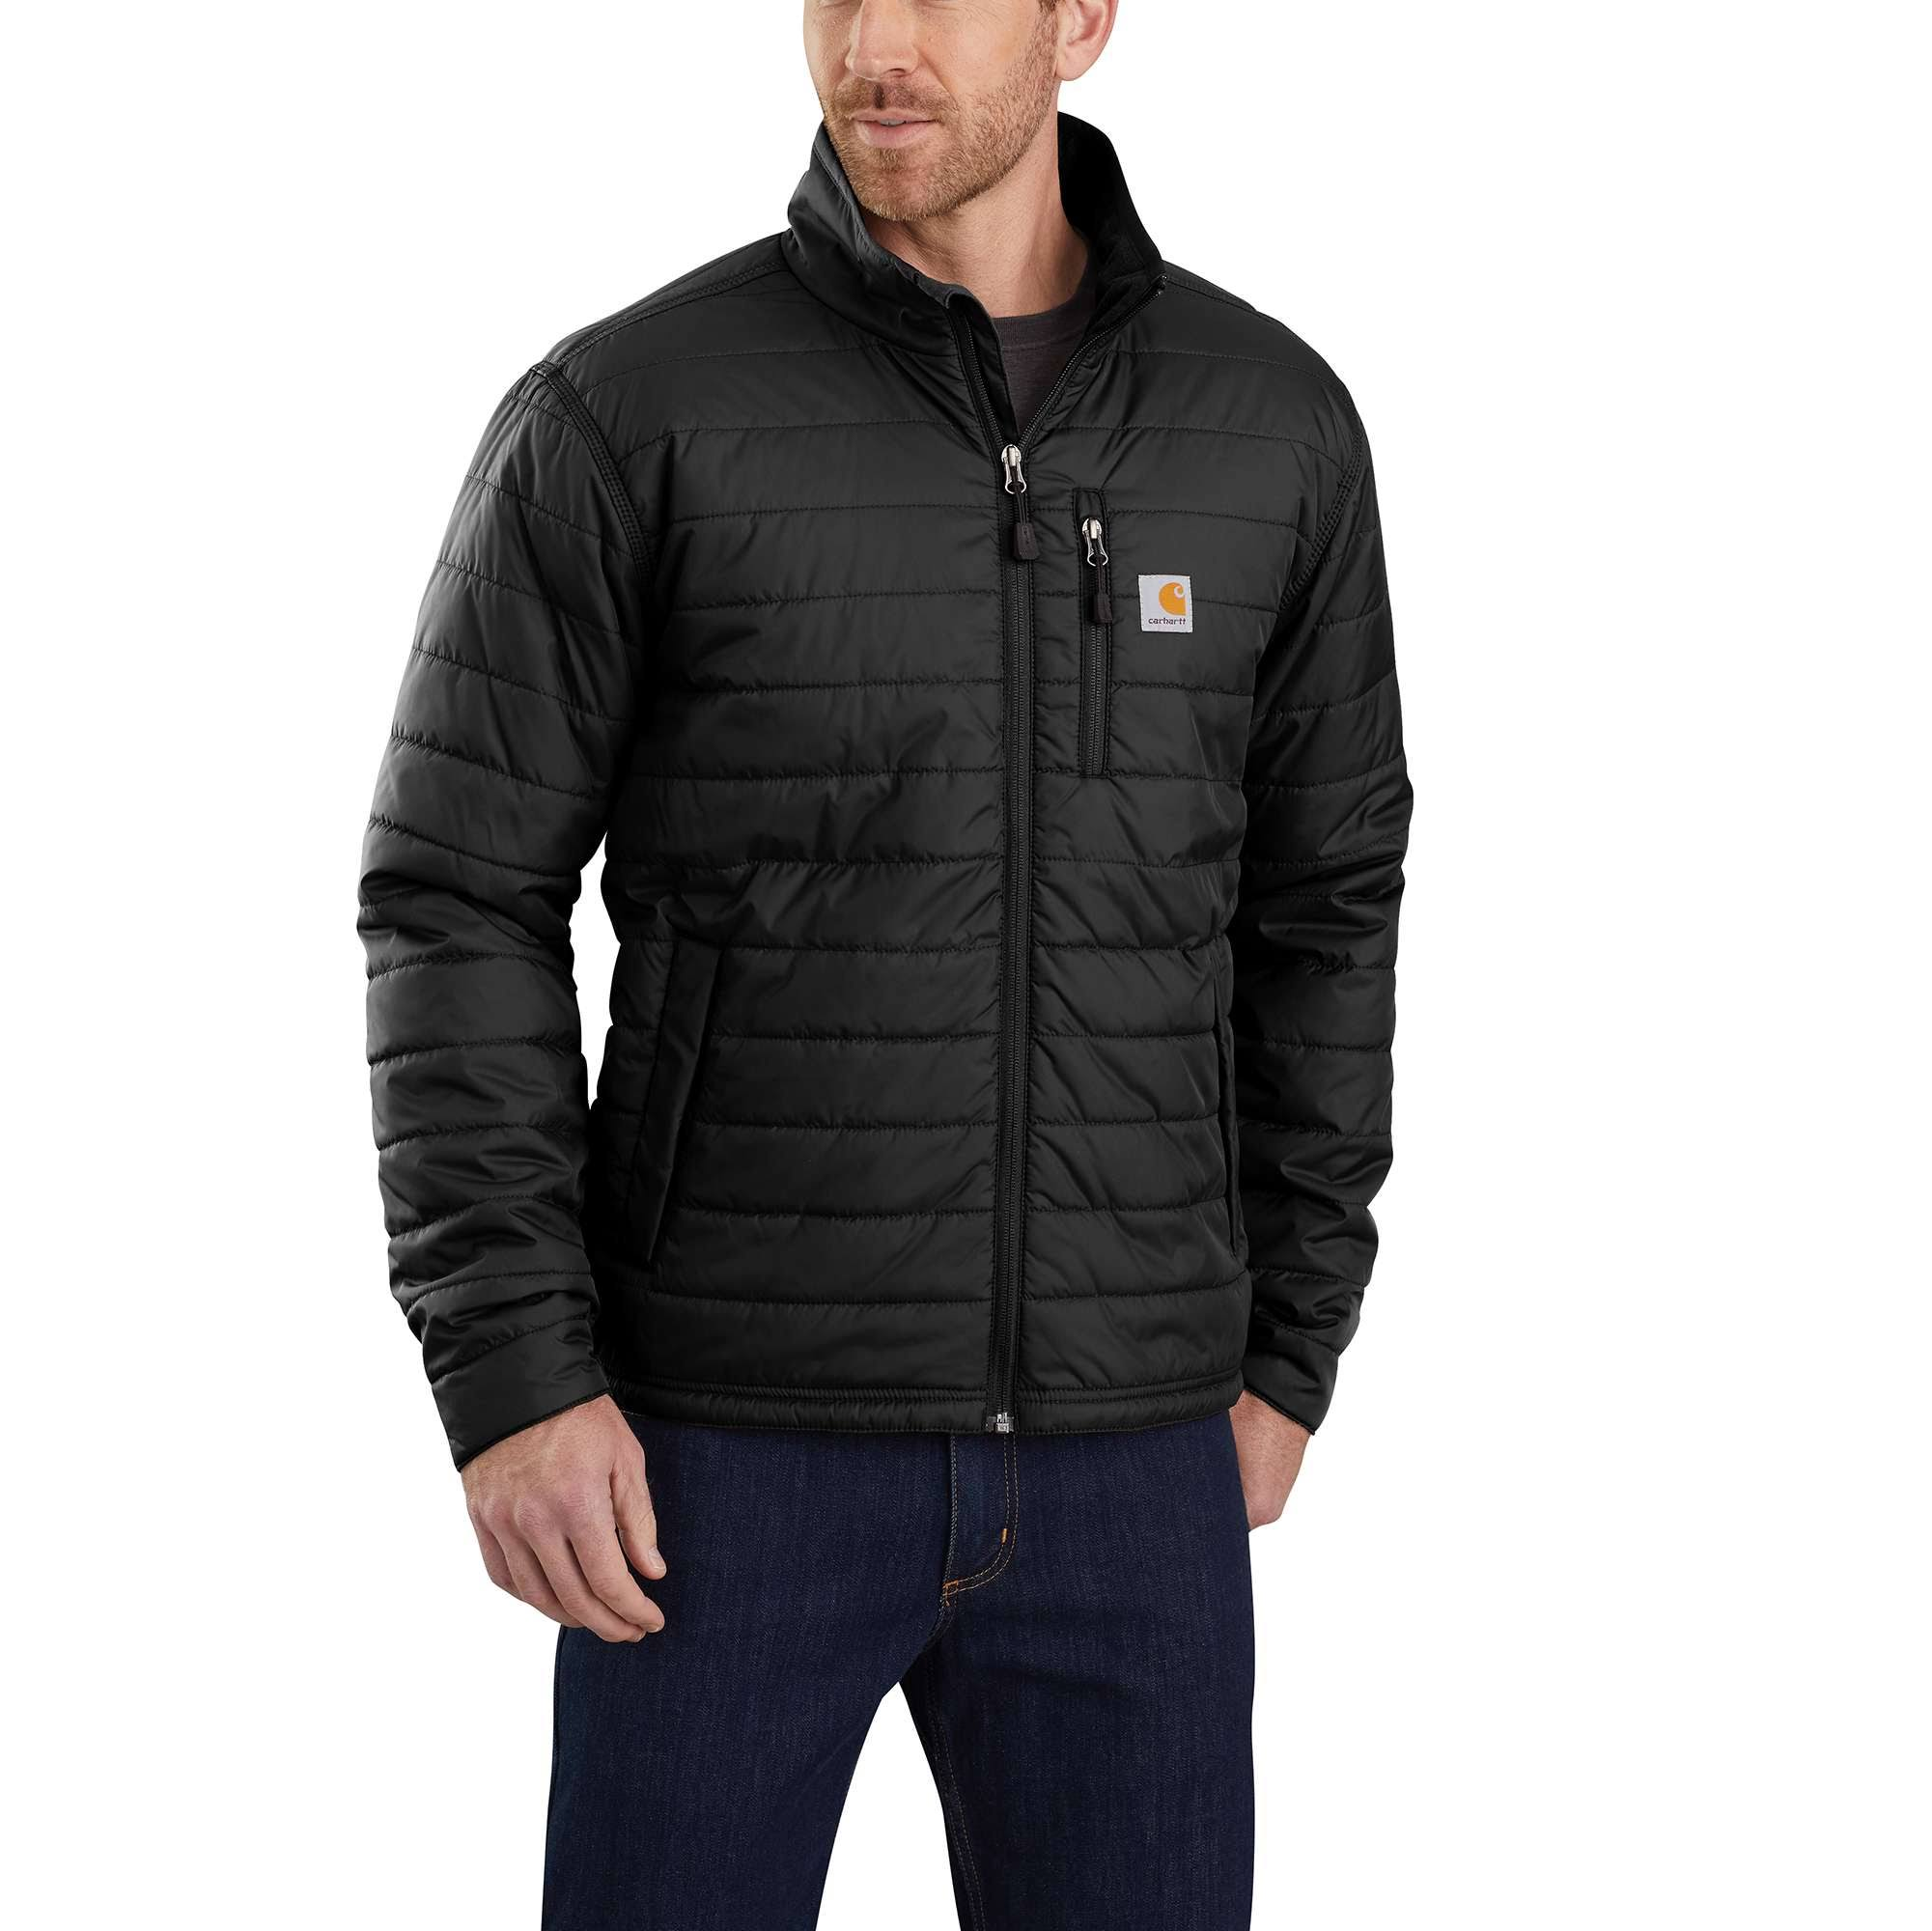 Carhartt Men's Gilliam Lightweight Insulated Jacket - Black, Large